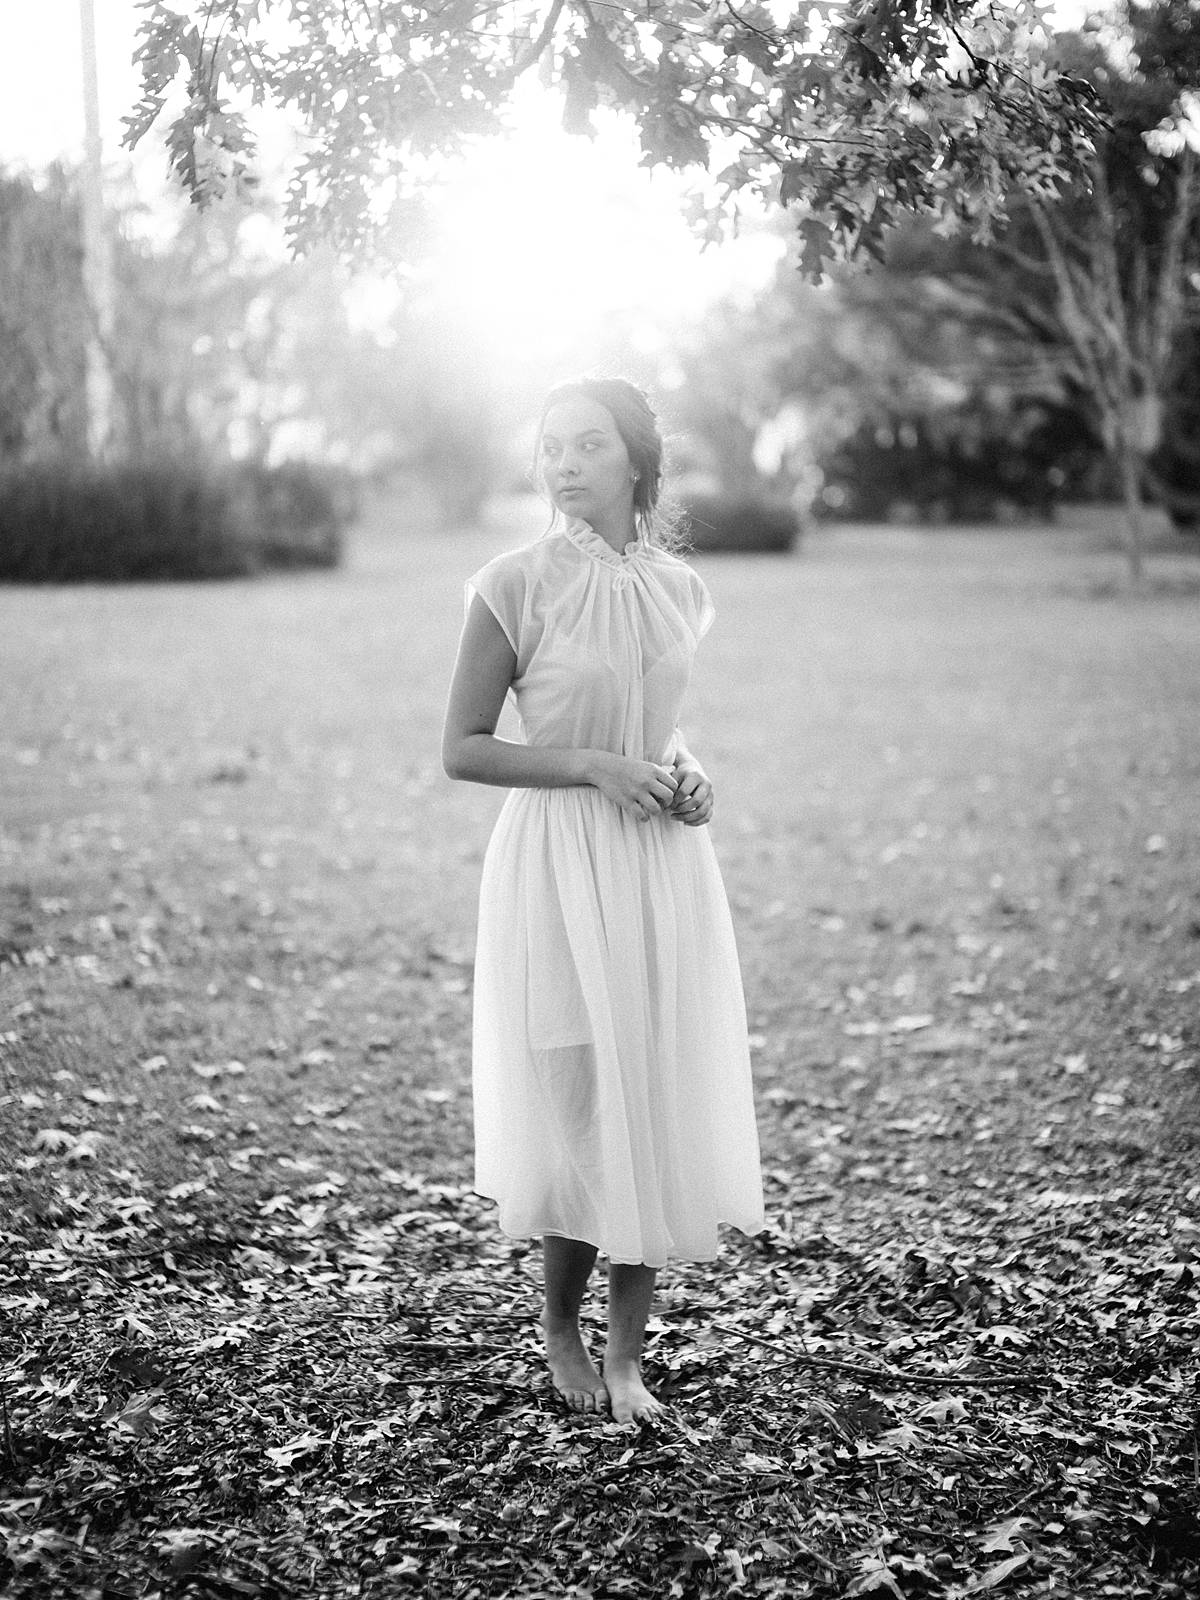 1911 paulina hampton park charleston fall portraits sony leica 00014_web